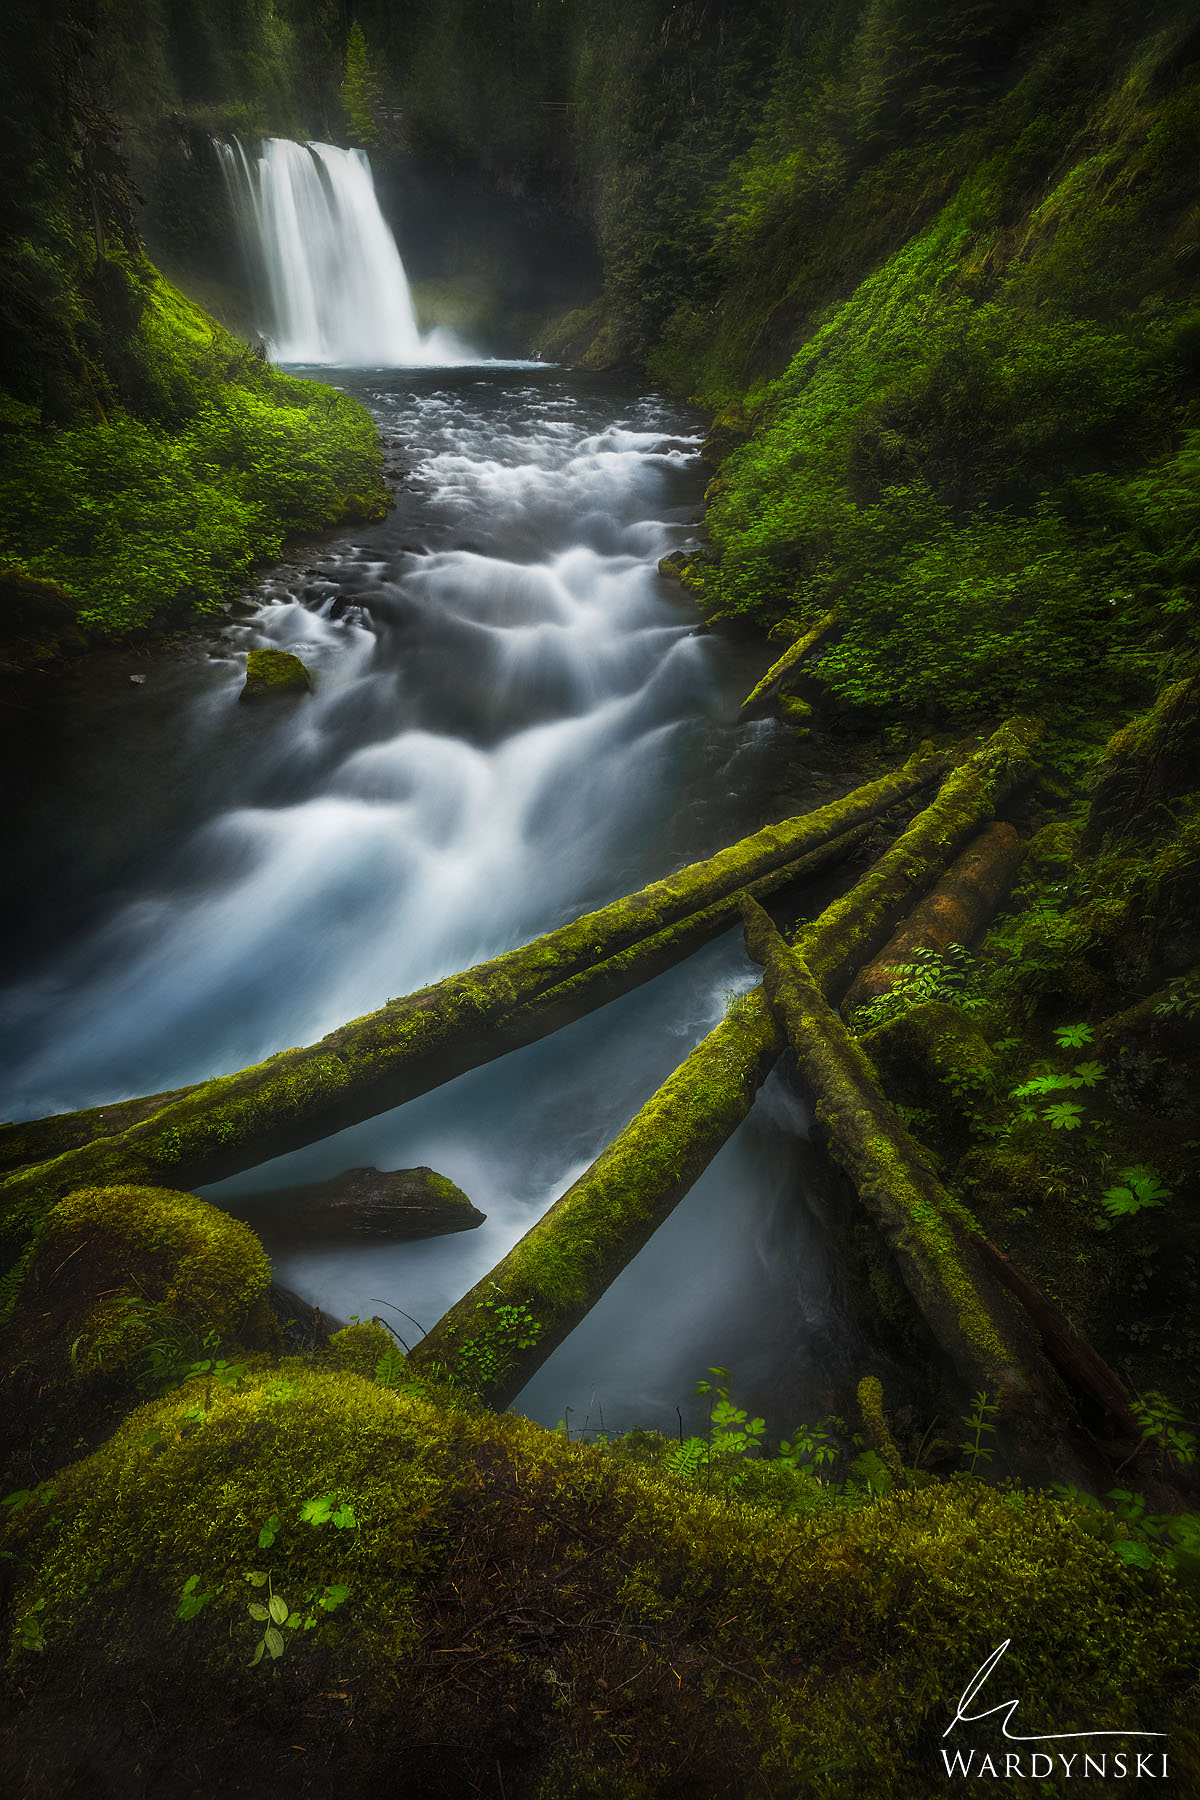 Fine Art Print | Limited Edition of 75 The Pacific North West is home to an active volcano chain. The brink of Koosah Falls is...